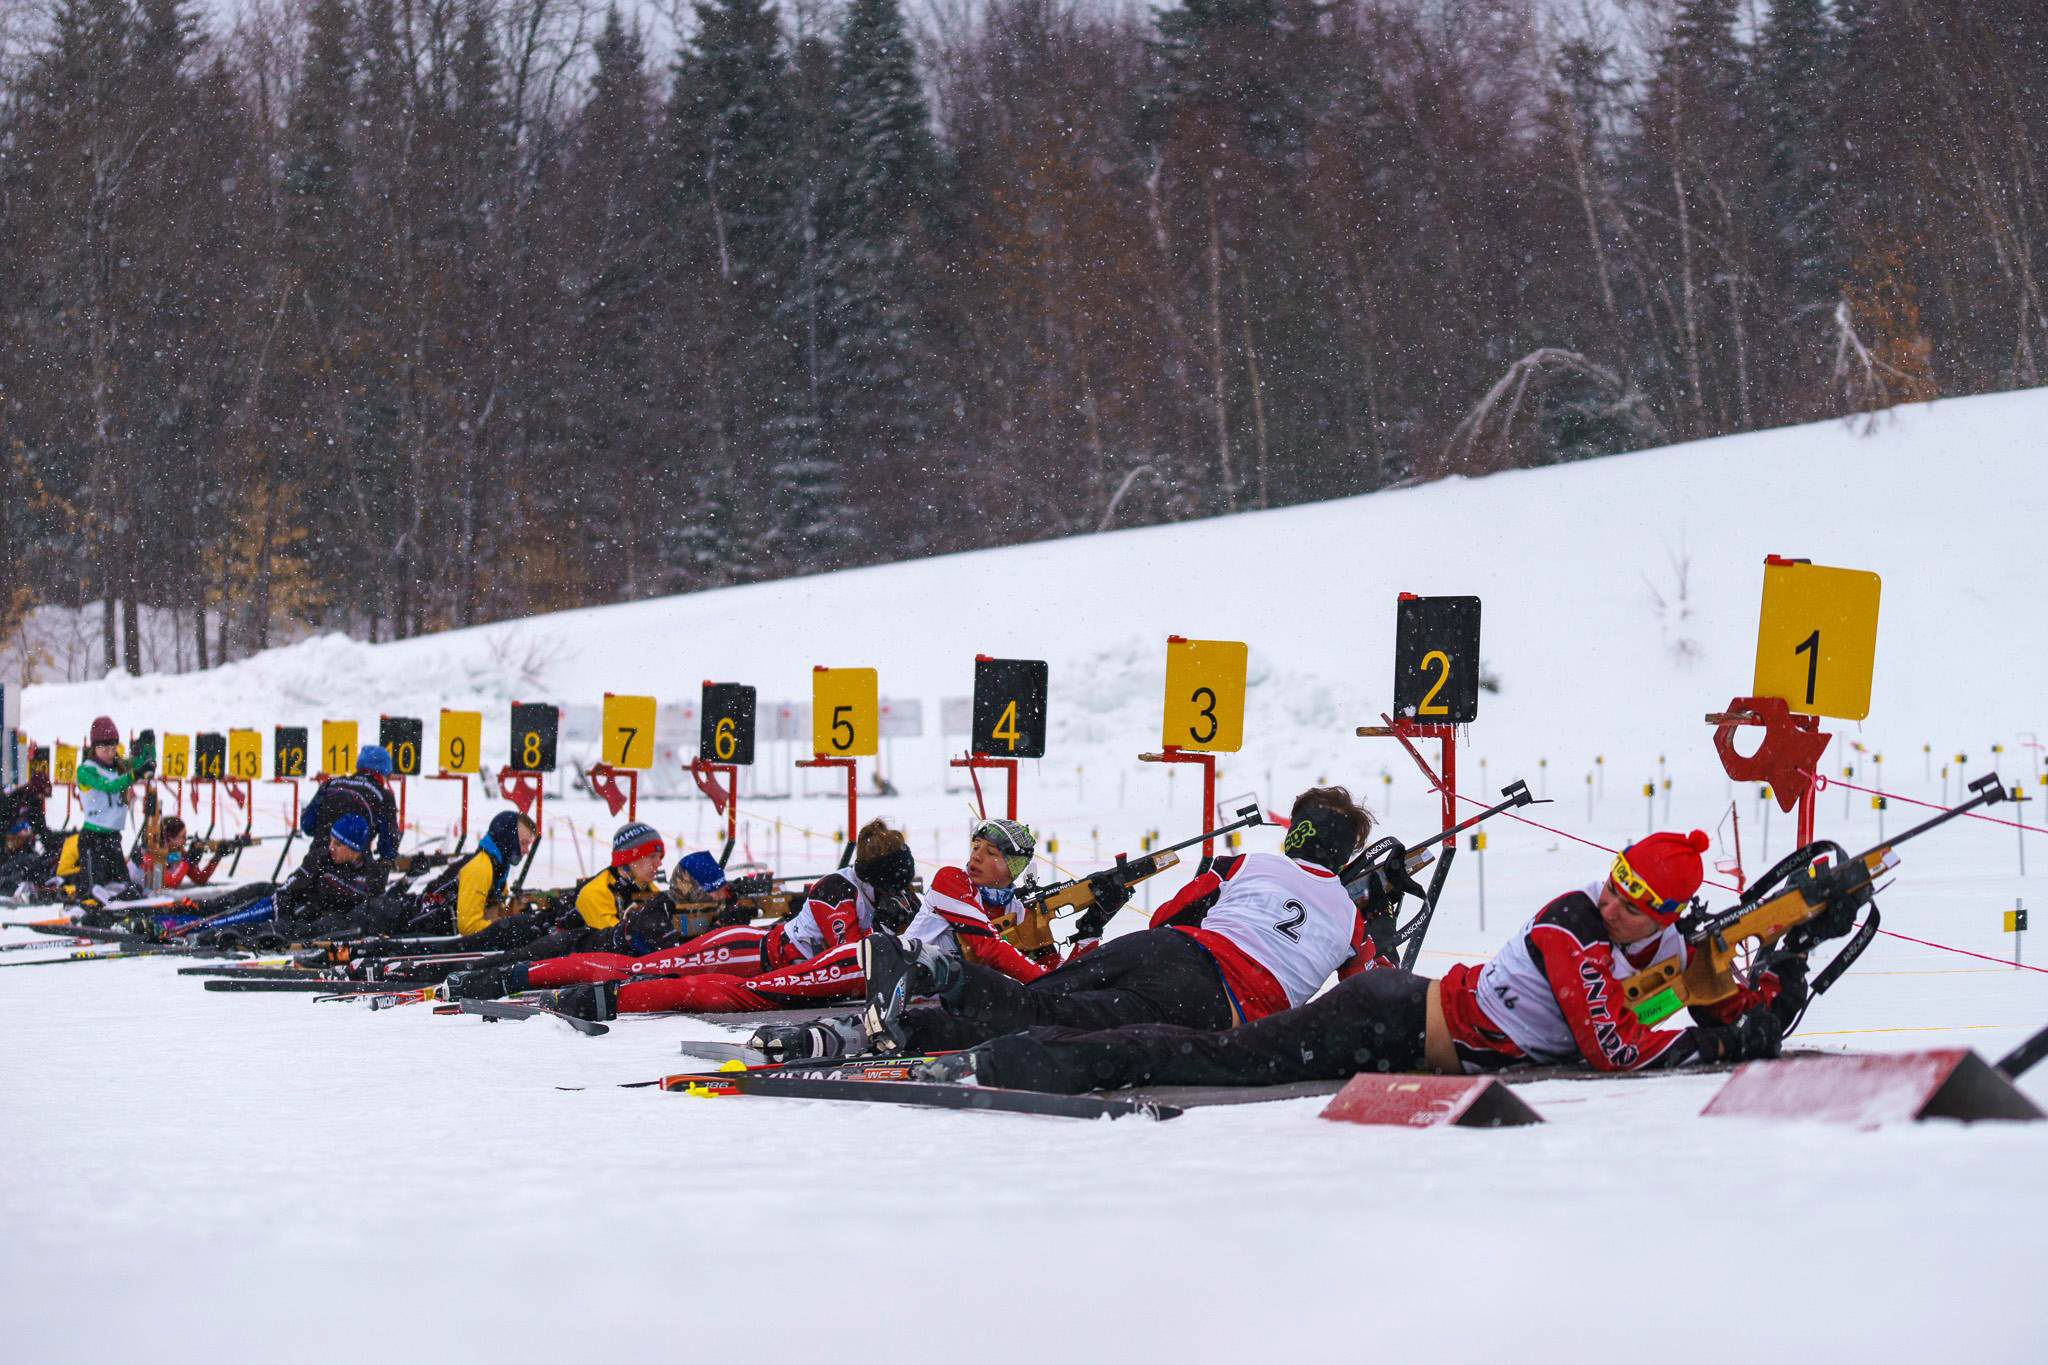 Cadet biathletes, some from Team Ontario (firing lanes 1 to 4), shoot during the sprint race event.